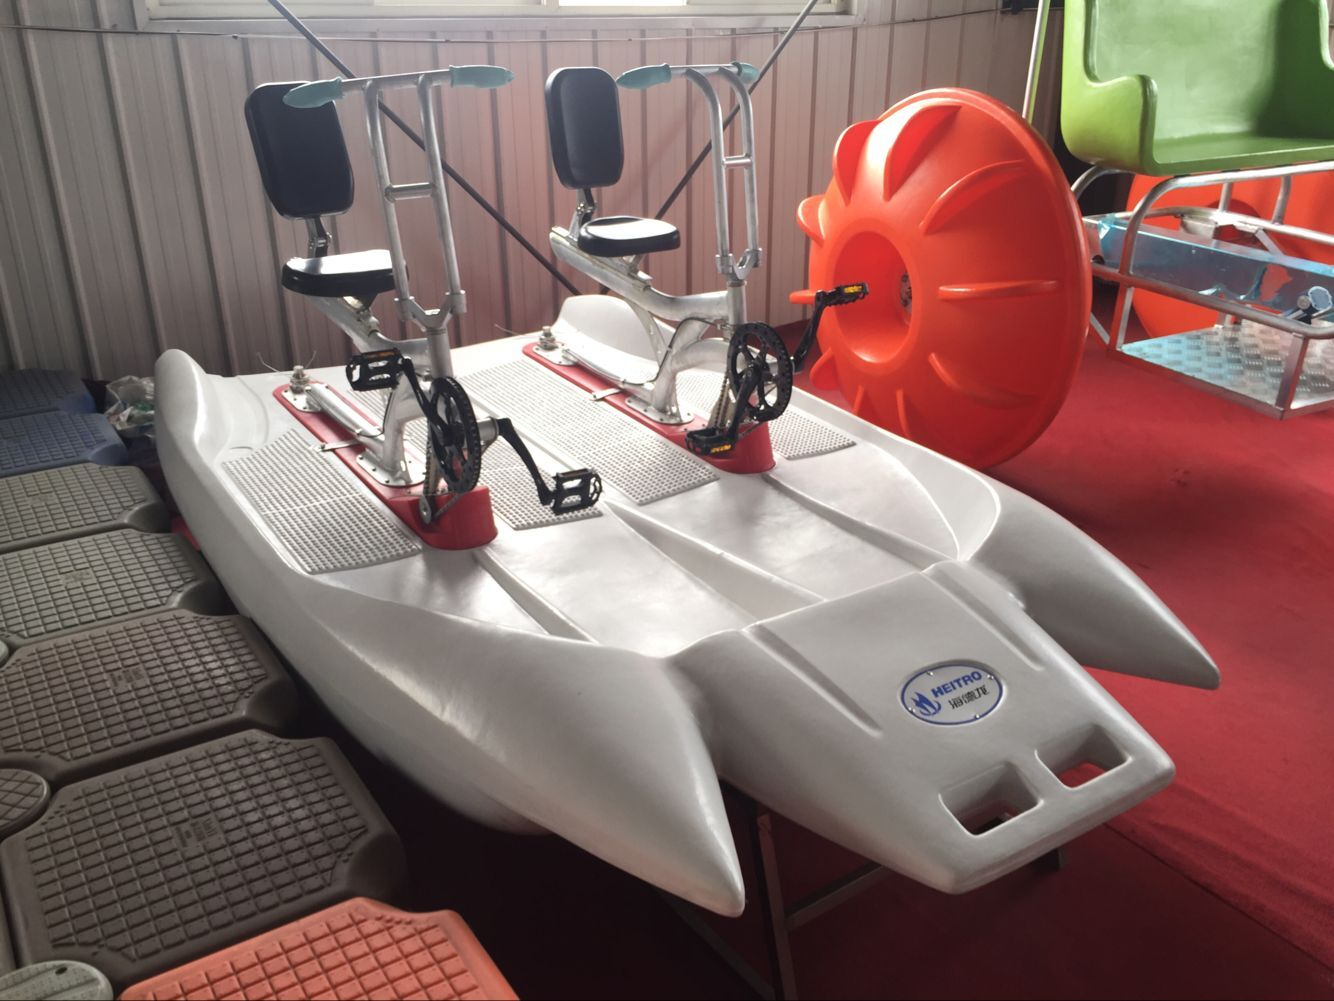 HEITRO double seats dolphin water bike with best price